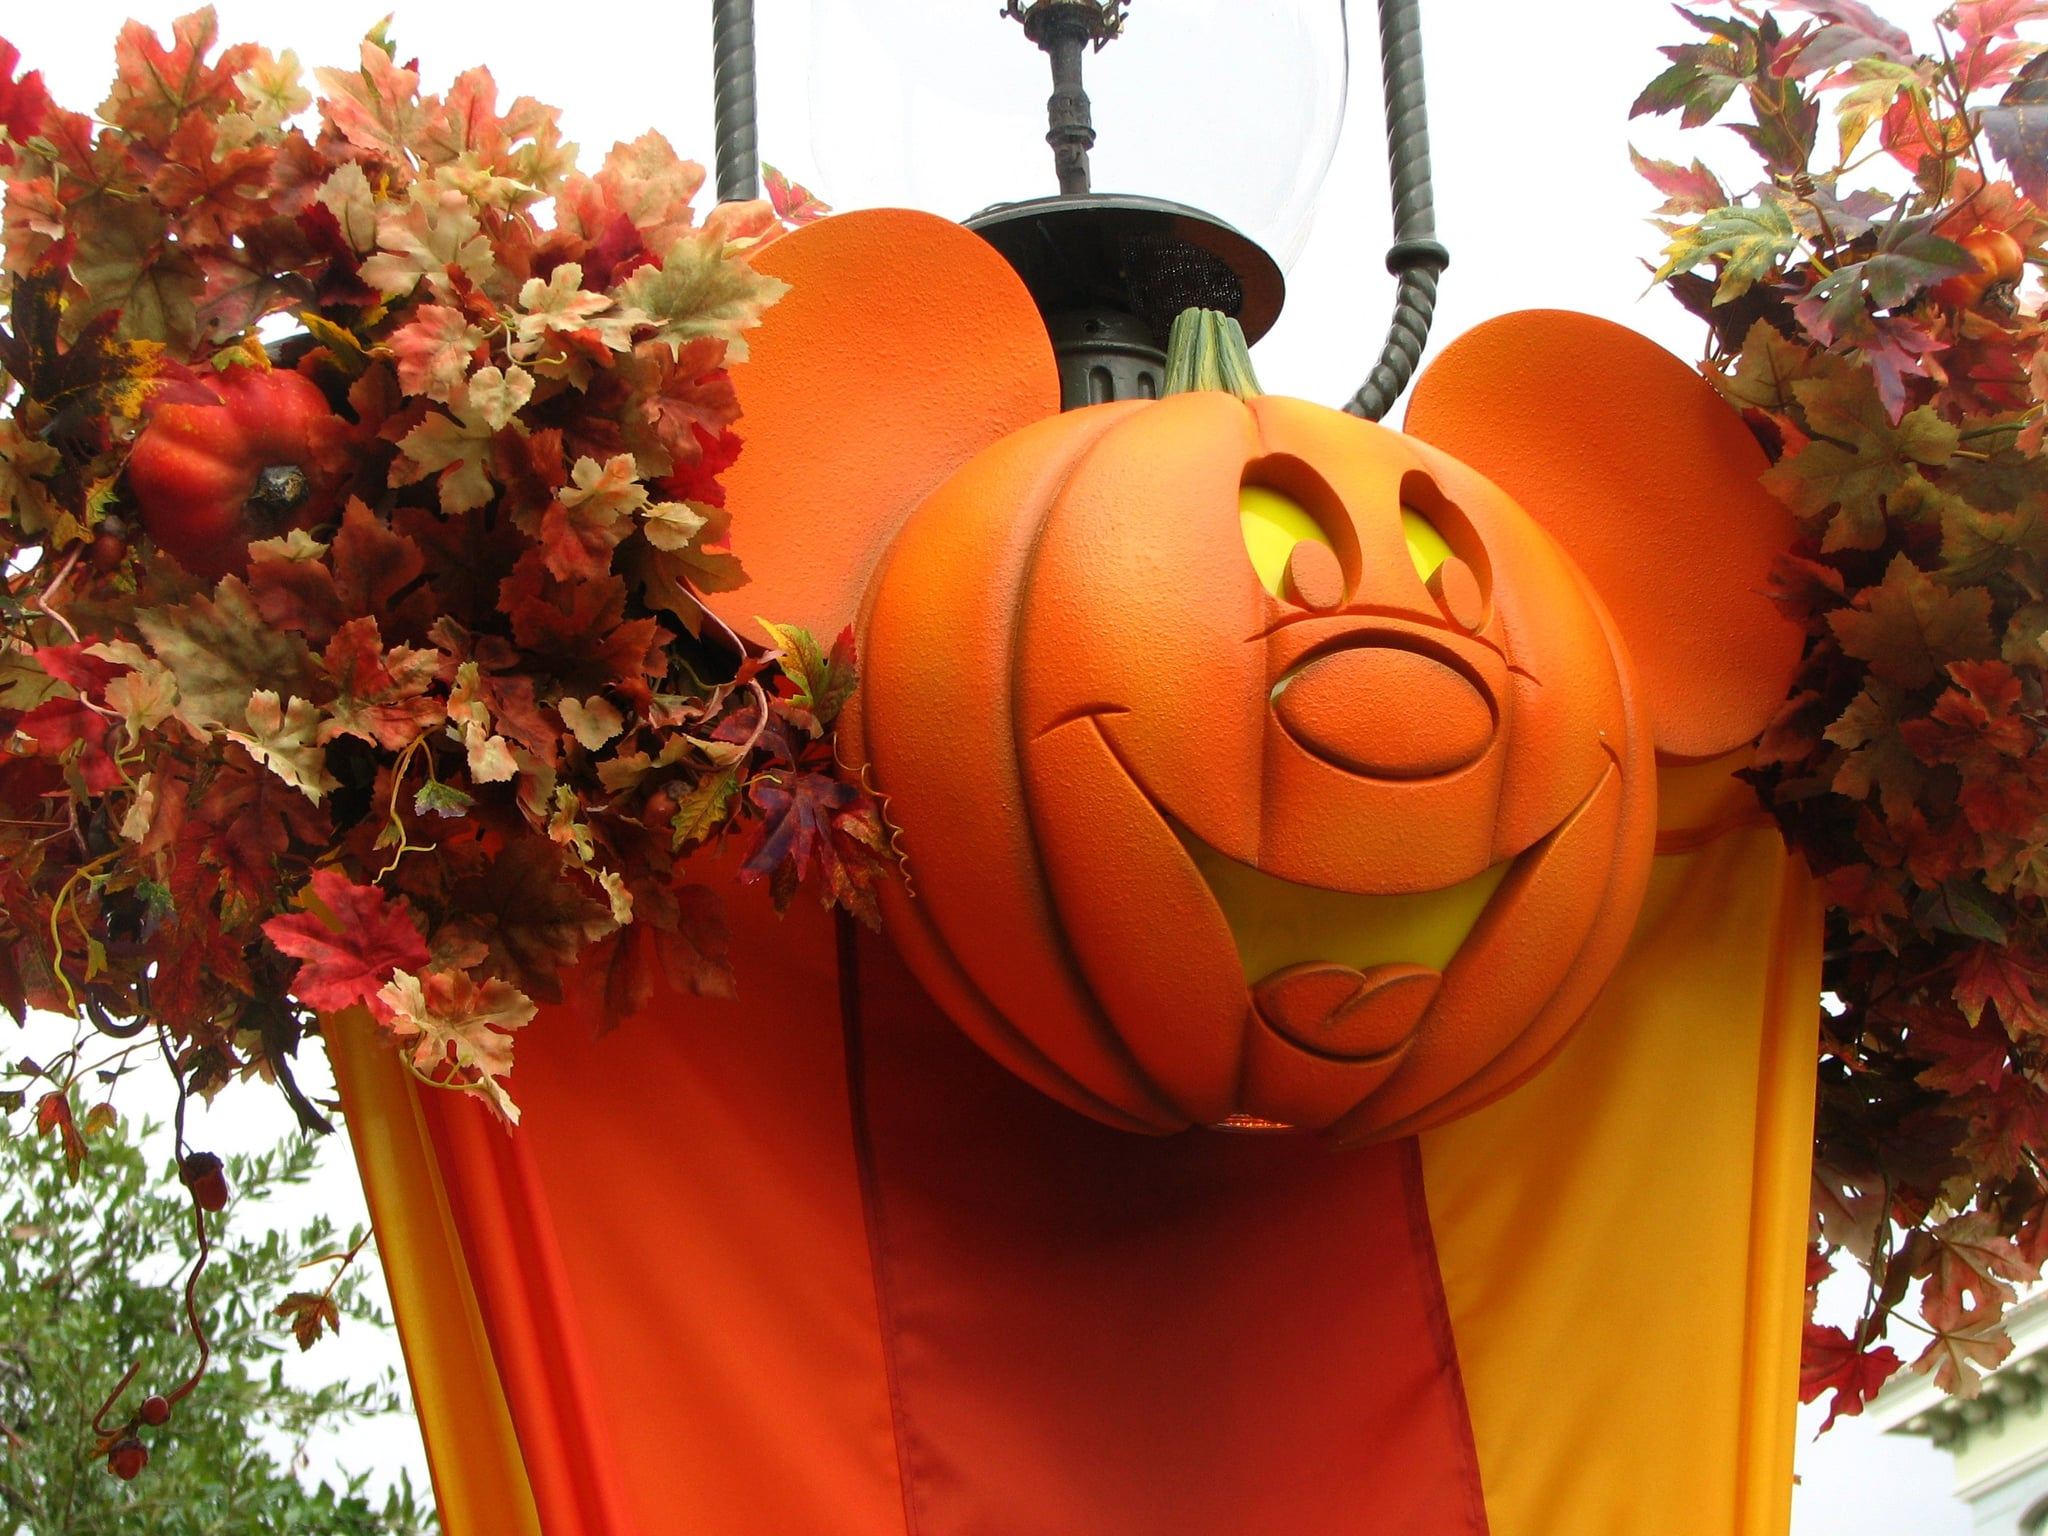 How Much Are Tickets For Mickey's Halloween Party? | POPSUGAR ...